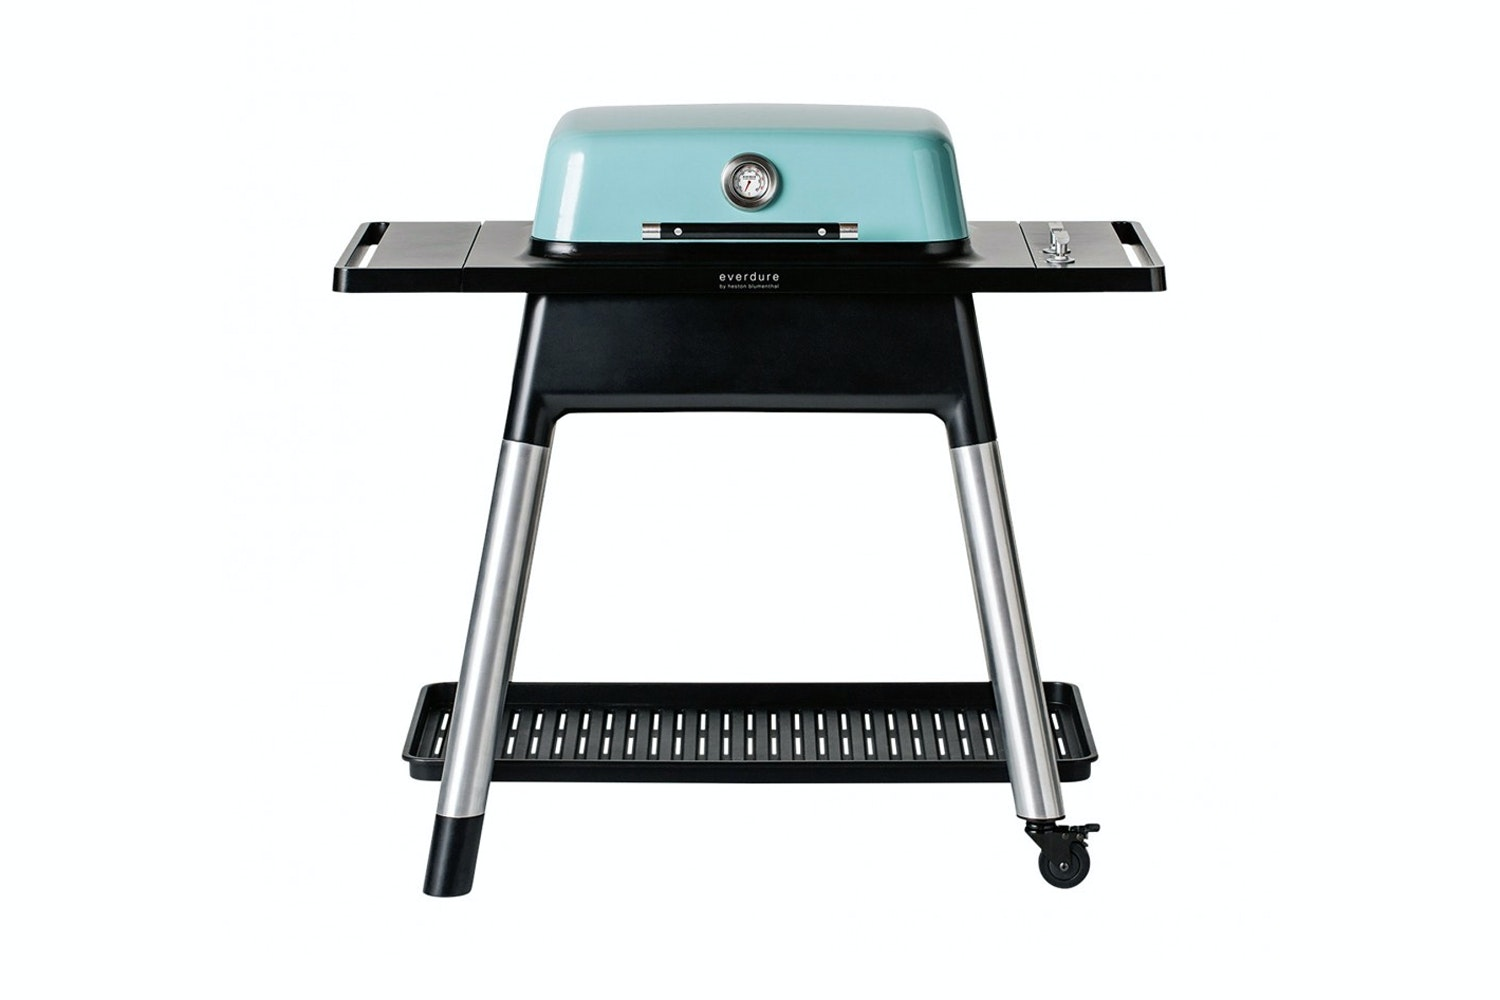 Everdure Force 2 Burner Gas Barbeque by Heston Blumenthal - Mint